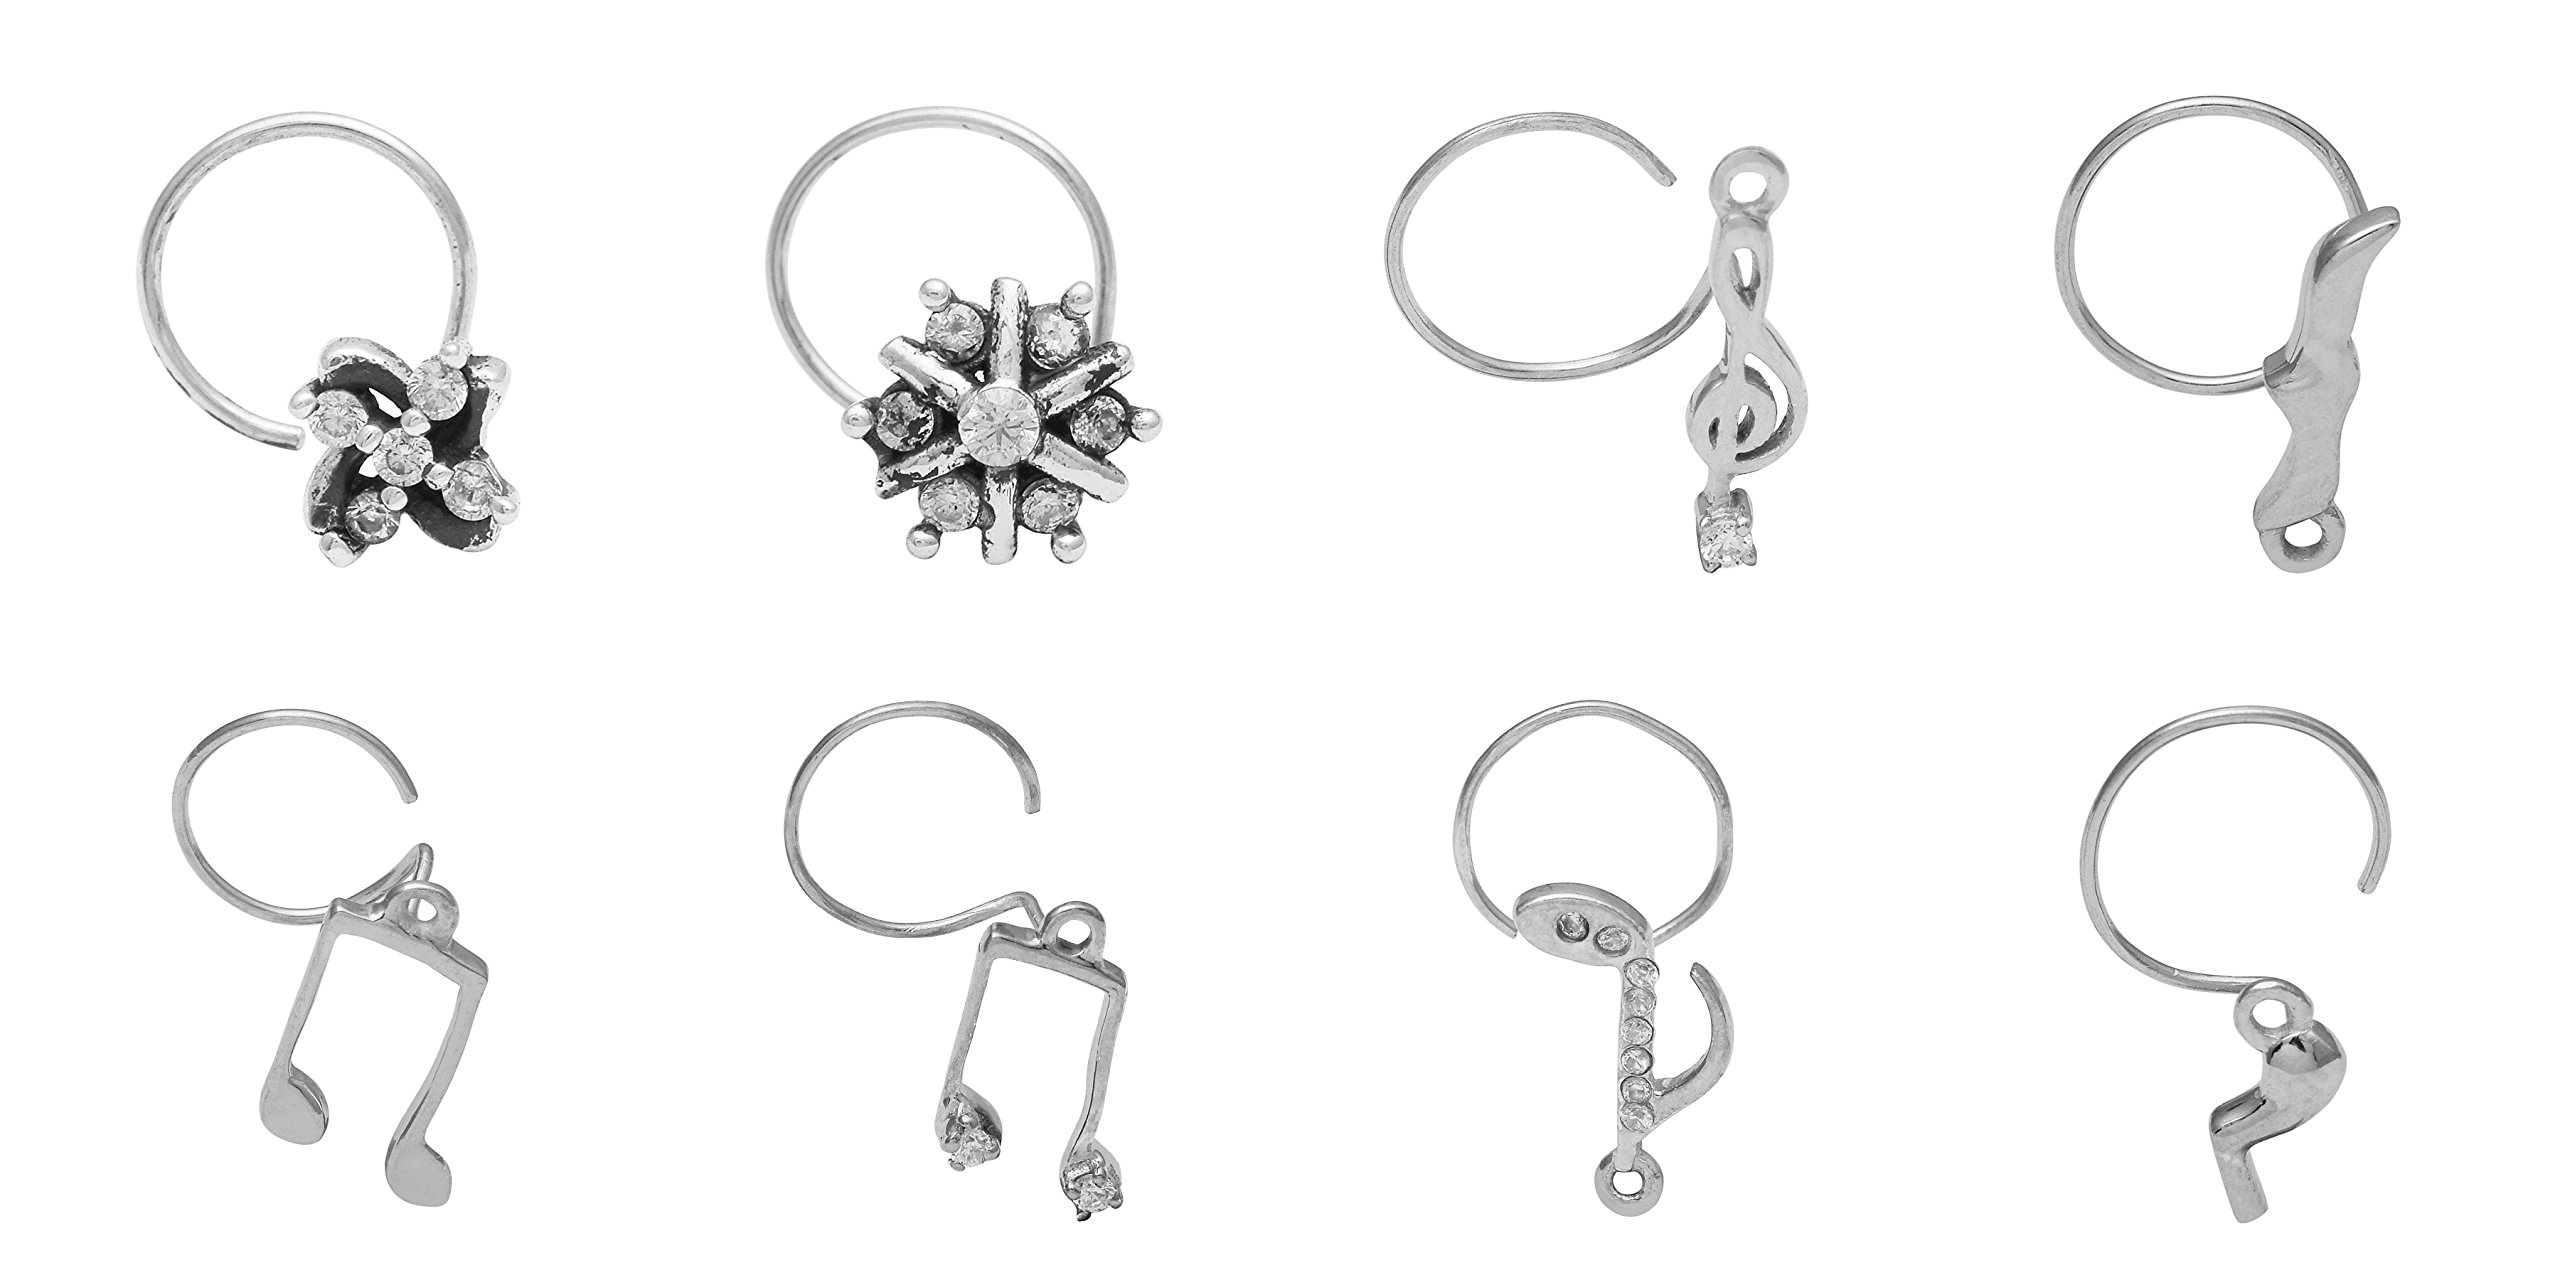 Oxidized 925 Sterling Silver Musical Sign Nose Pin for Women/Gilrs